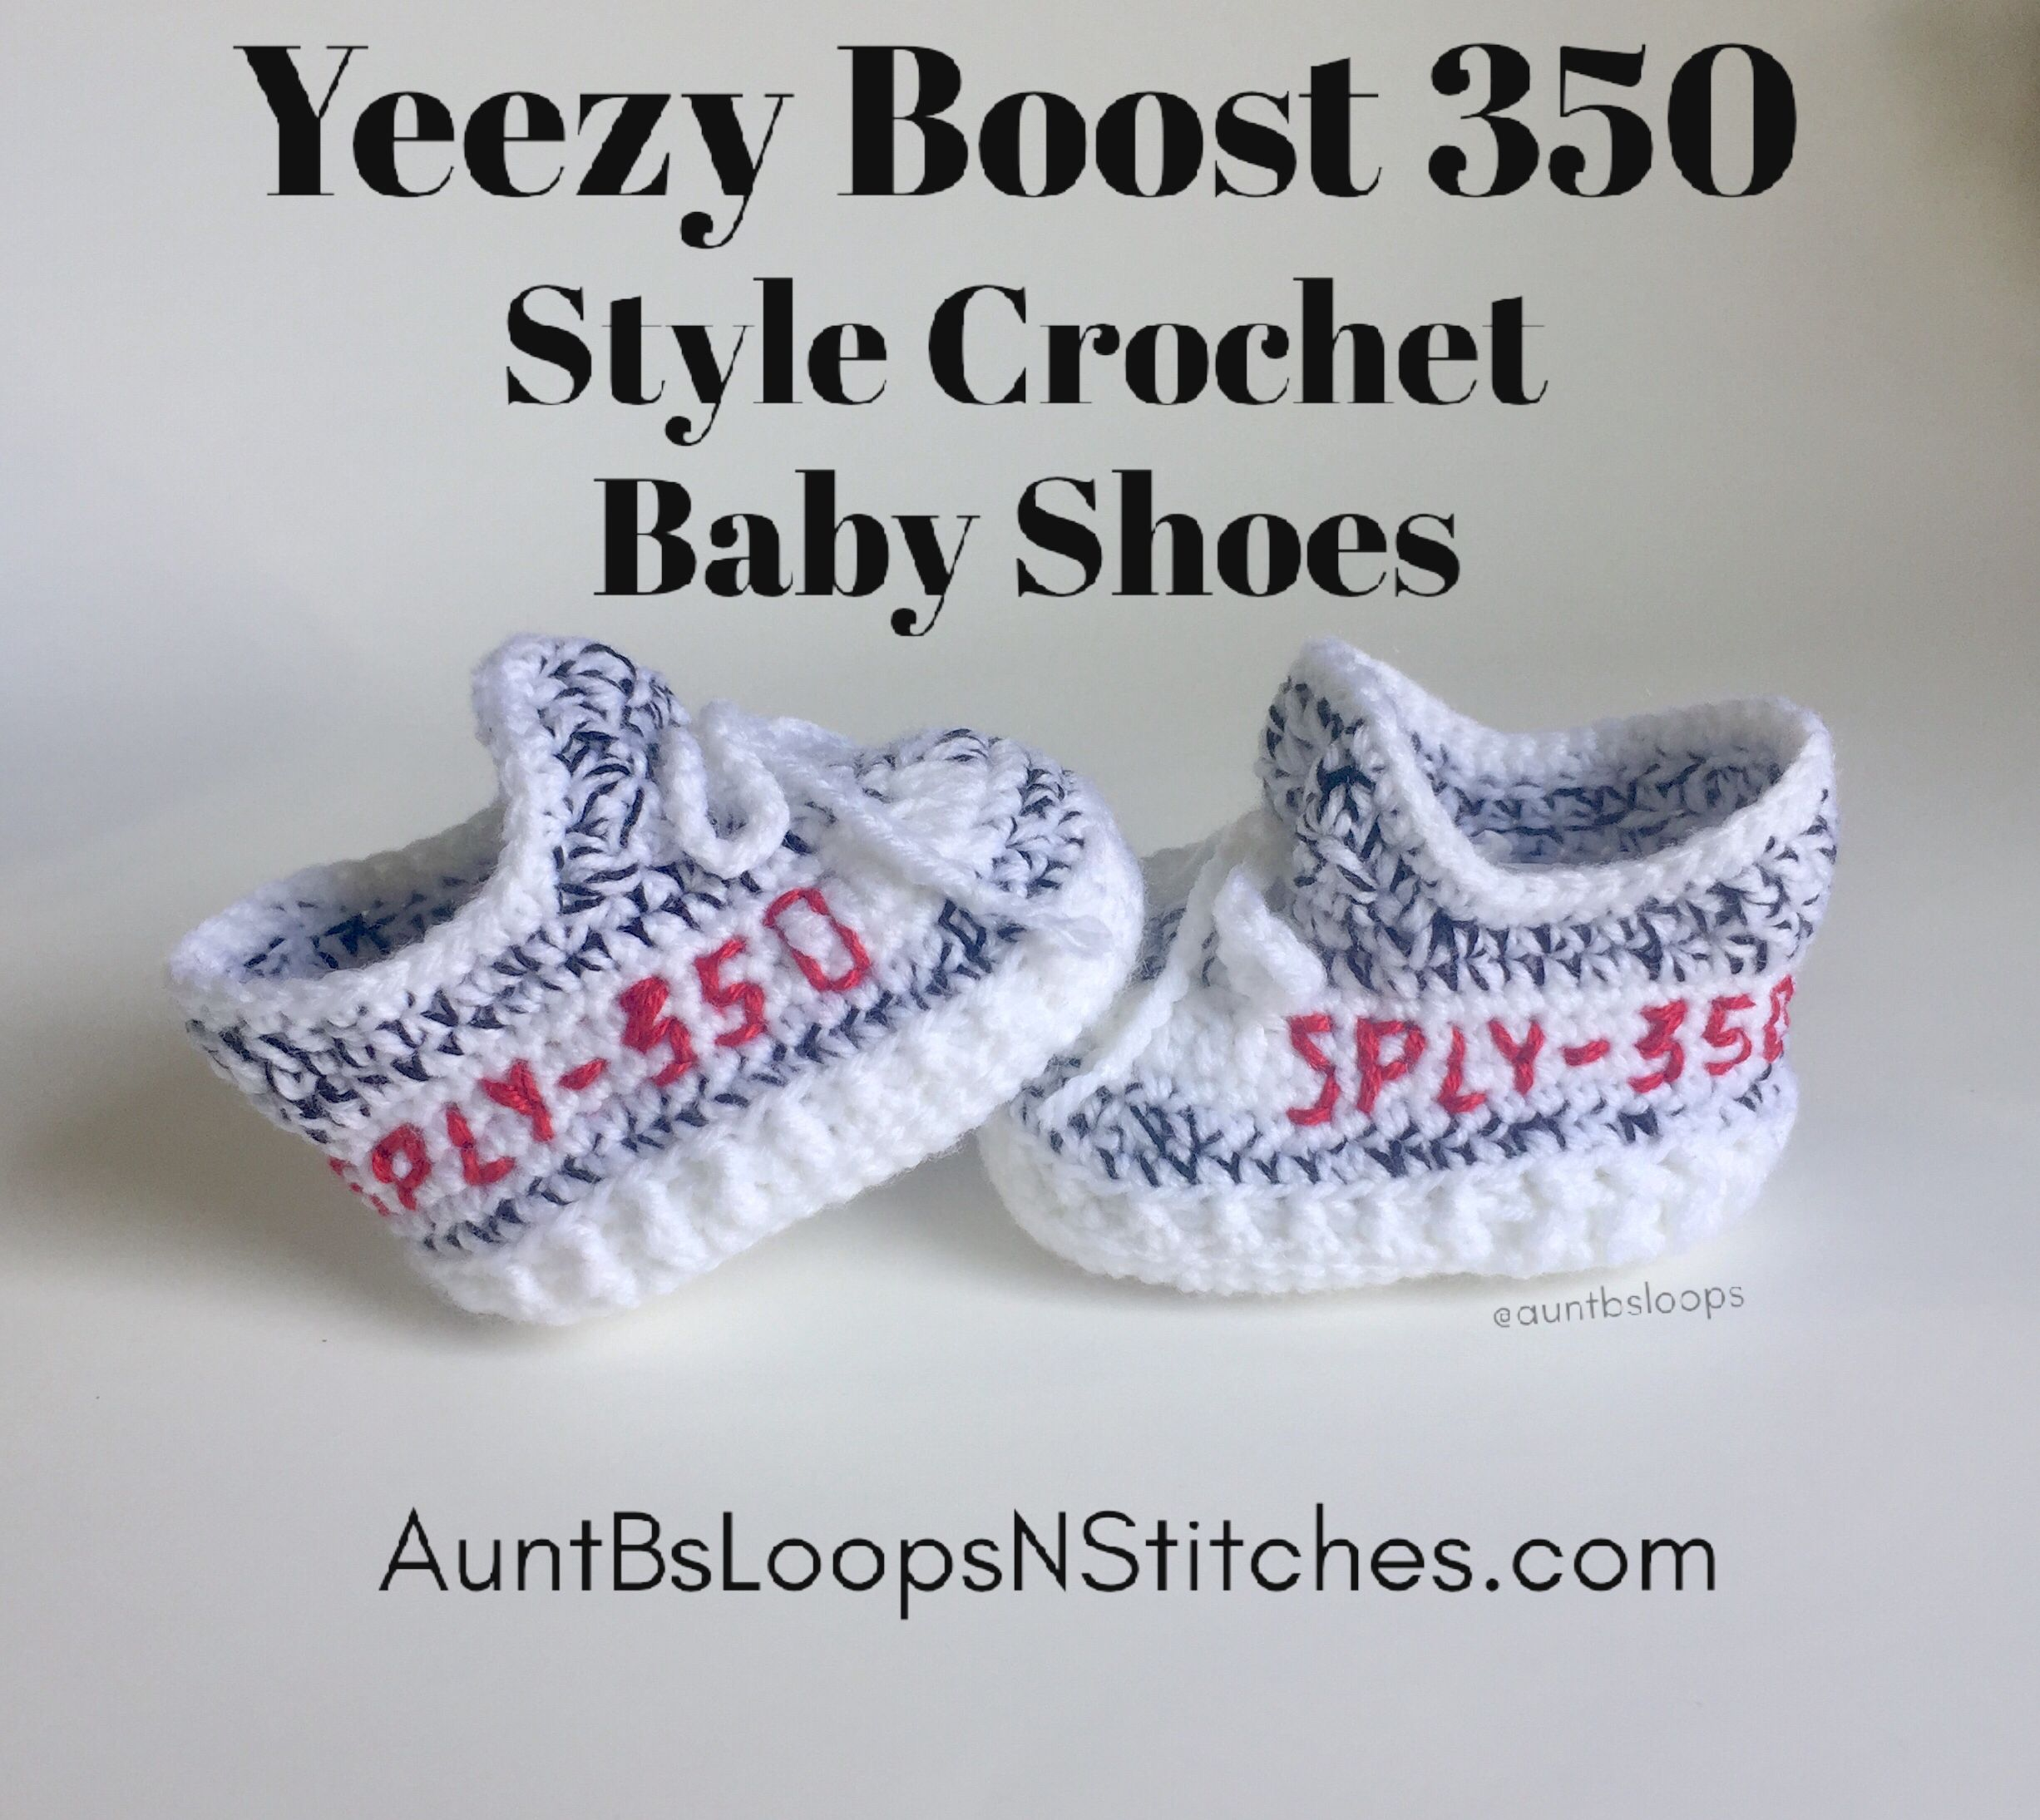 Crochet baby shoes, Baby yeezy shoes